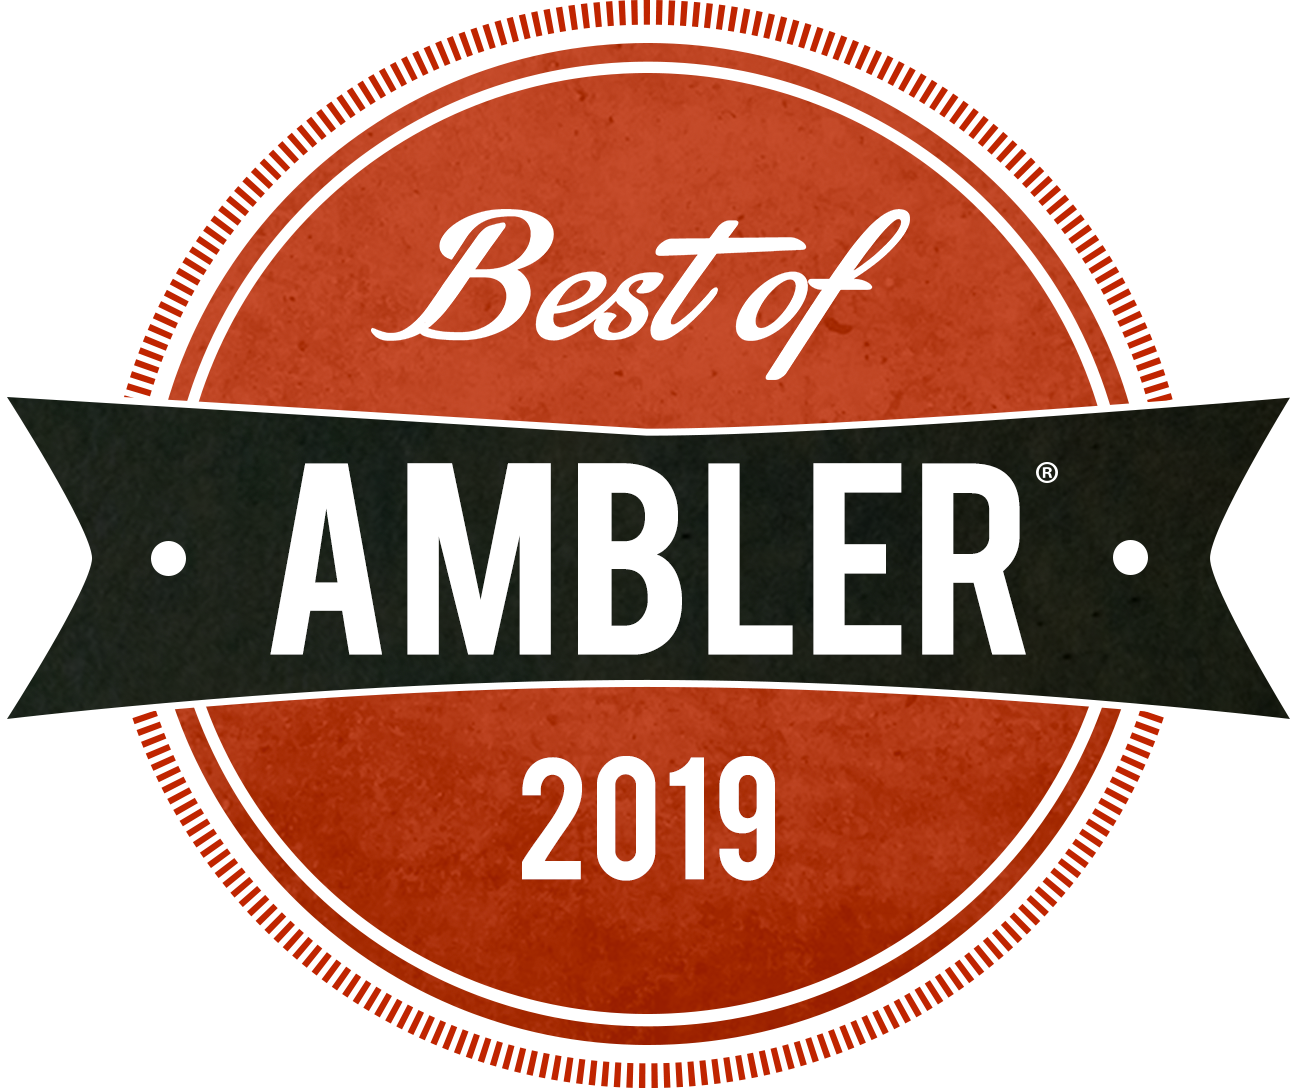 Best Of Ambler 2019